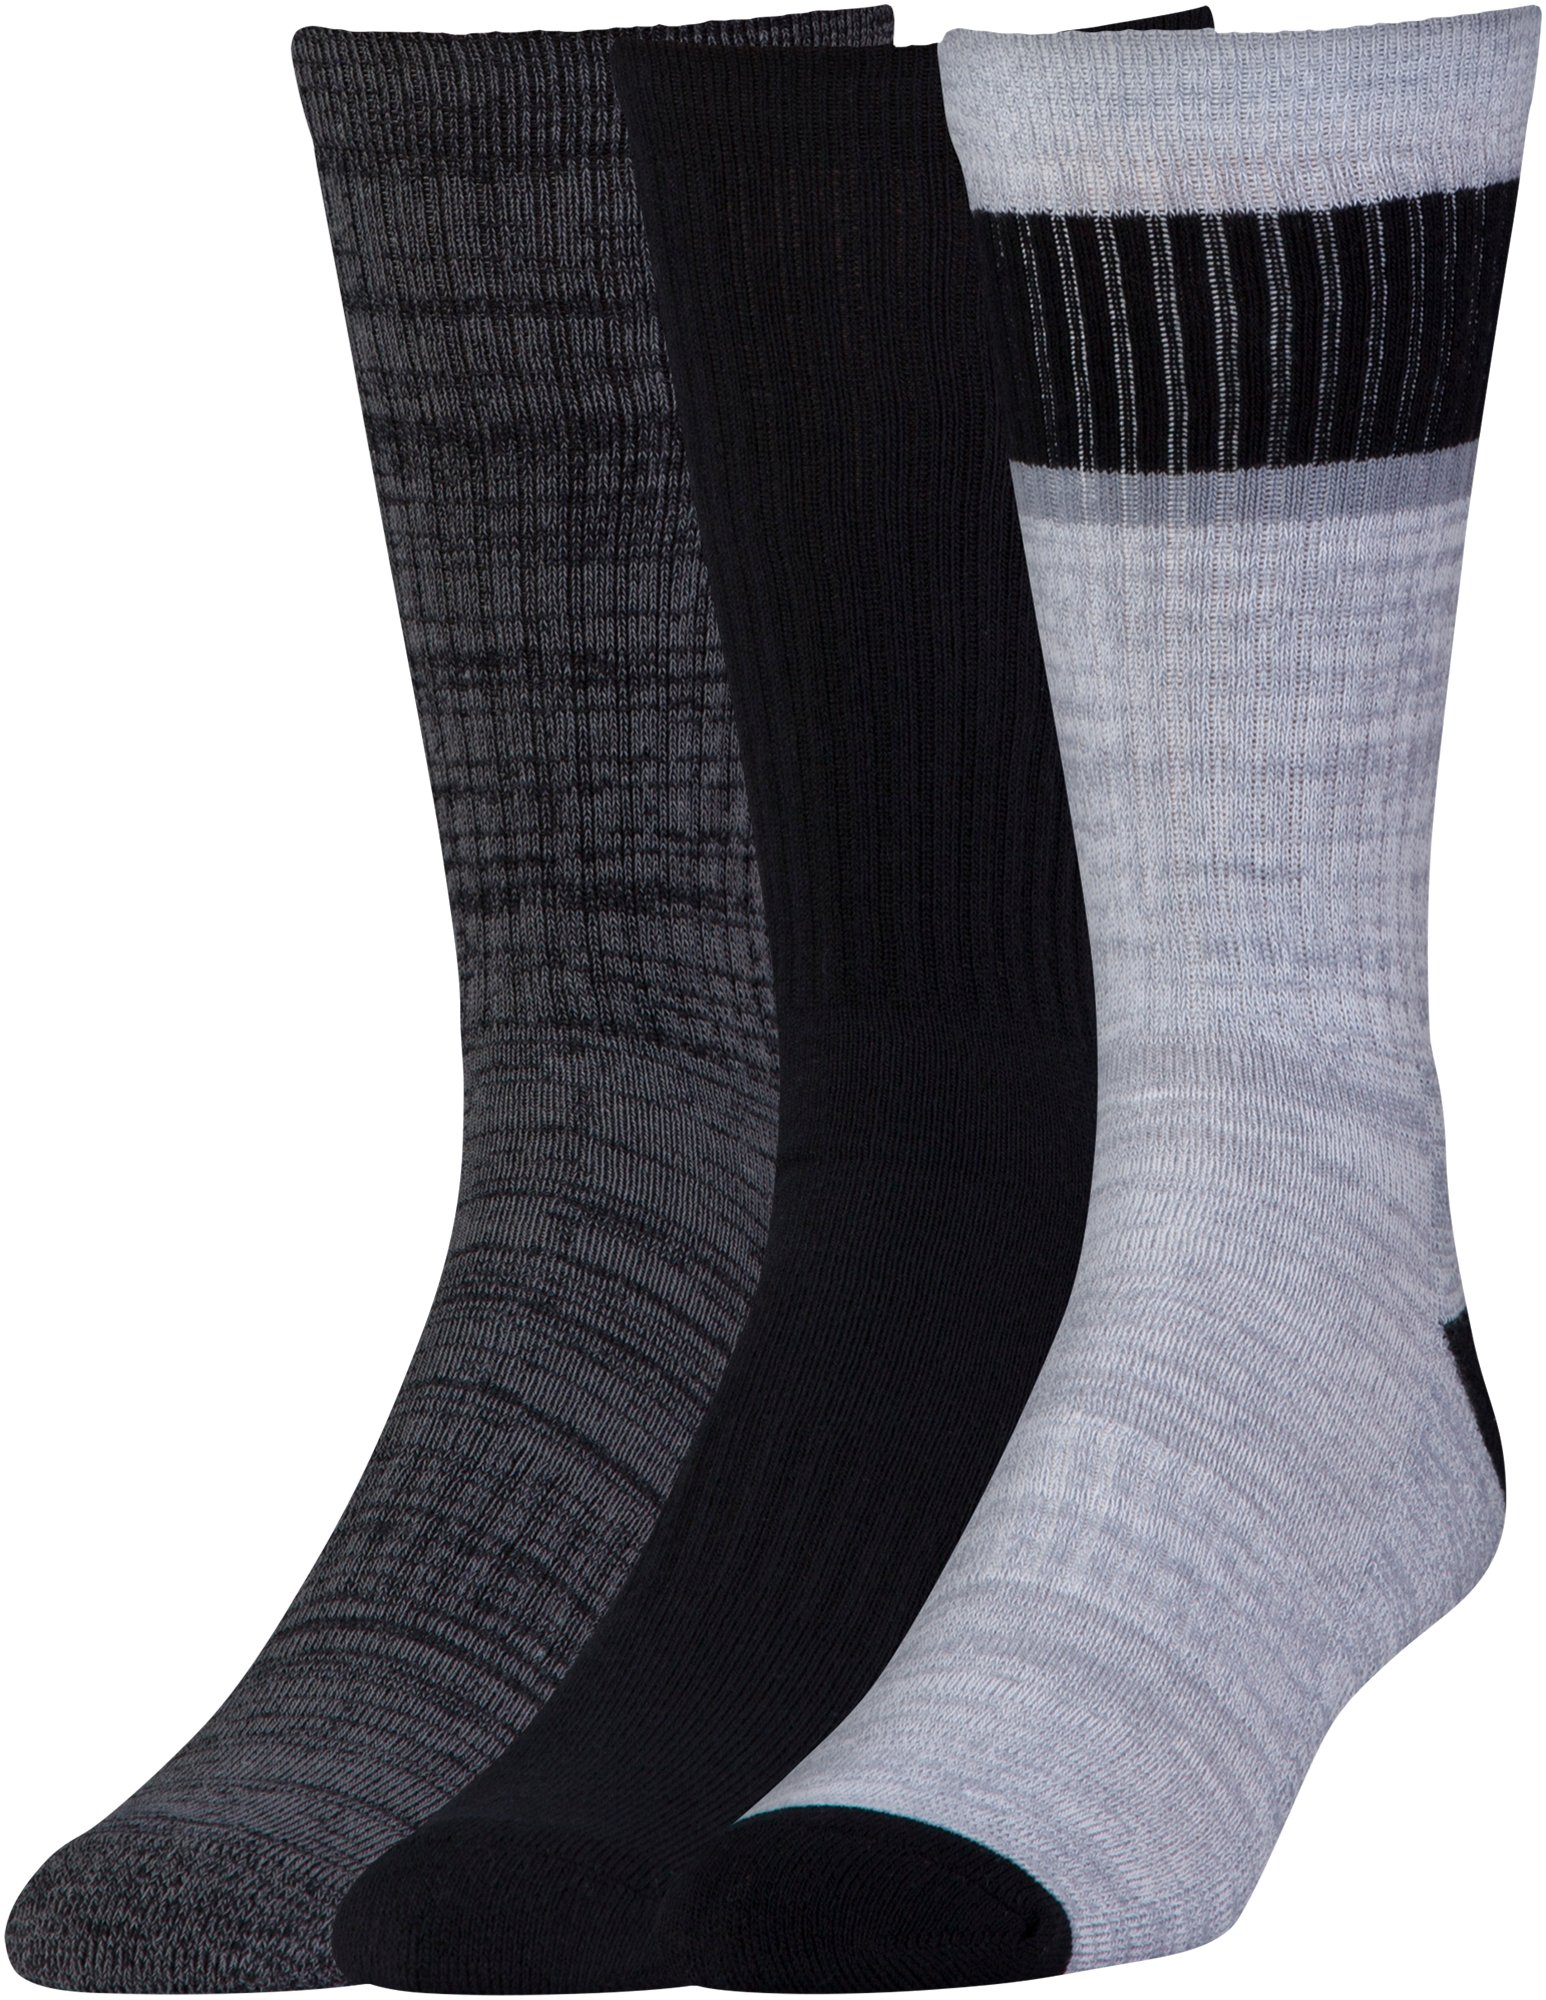 Men's UA Twisted 2.0 Crew Socks - 3 Pack , Black , zoomed image